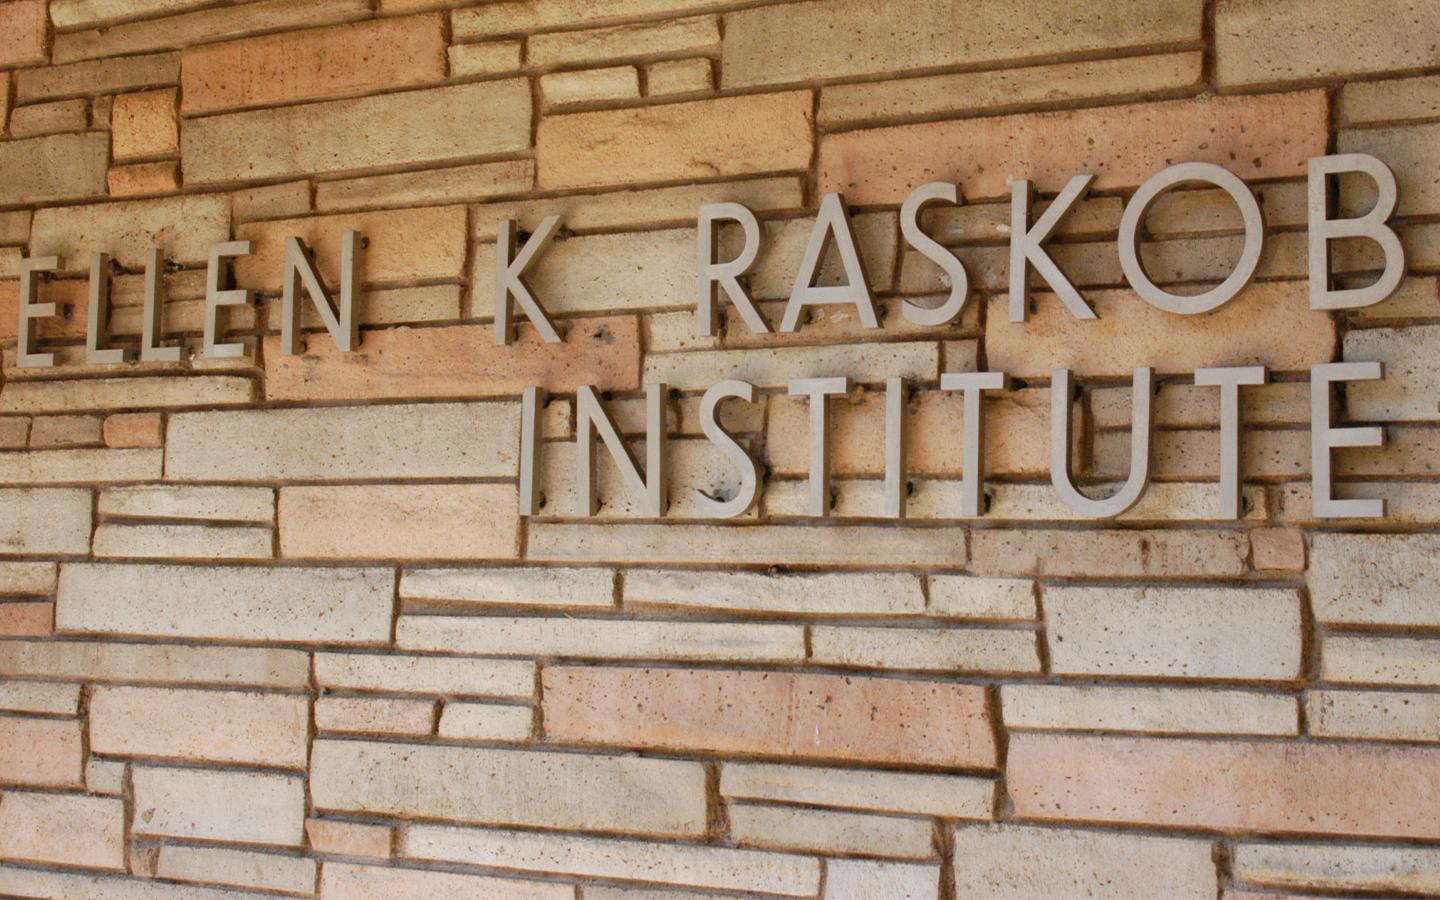 Ellen K Raskob Institute